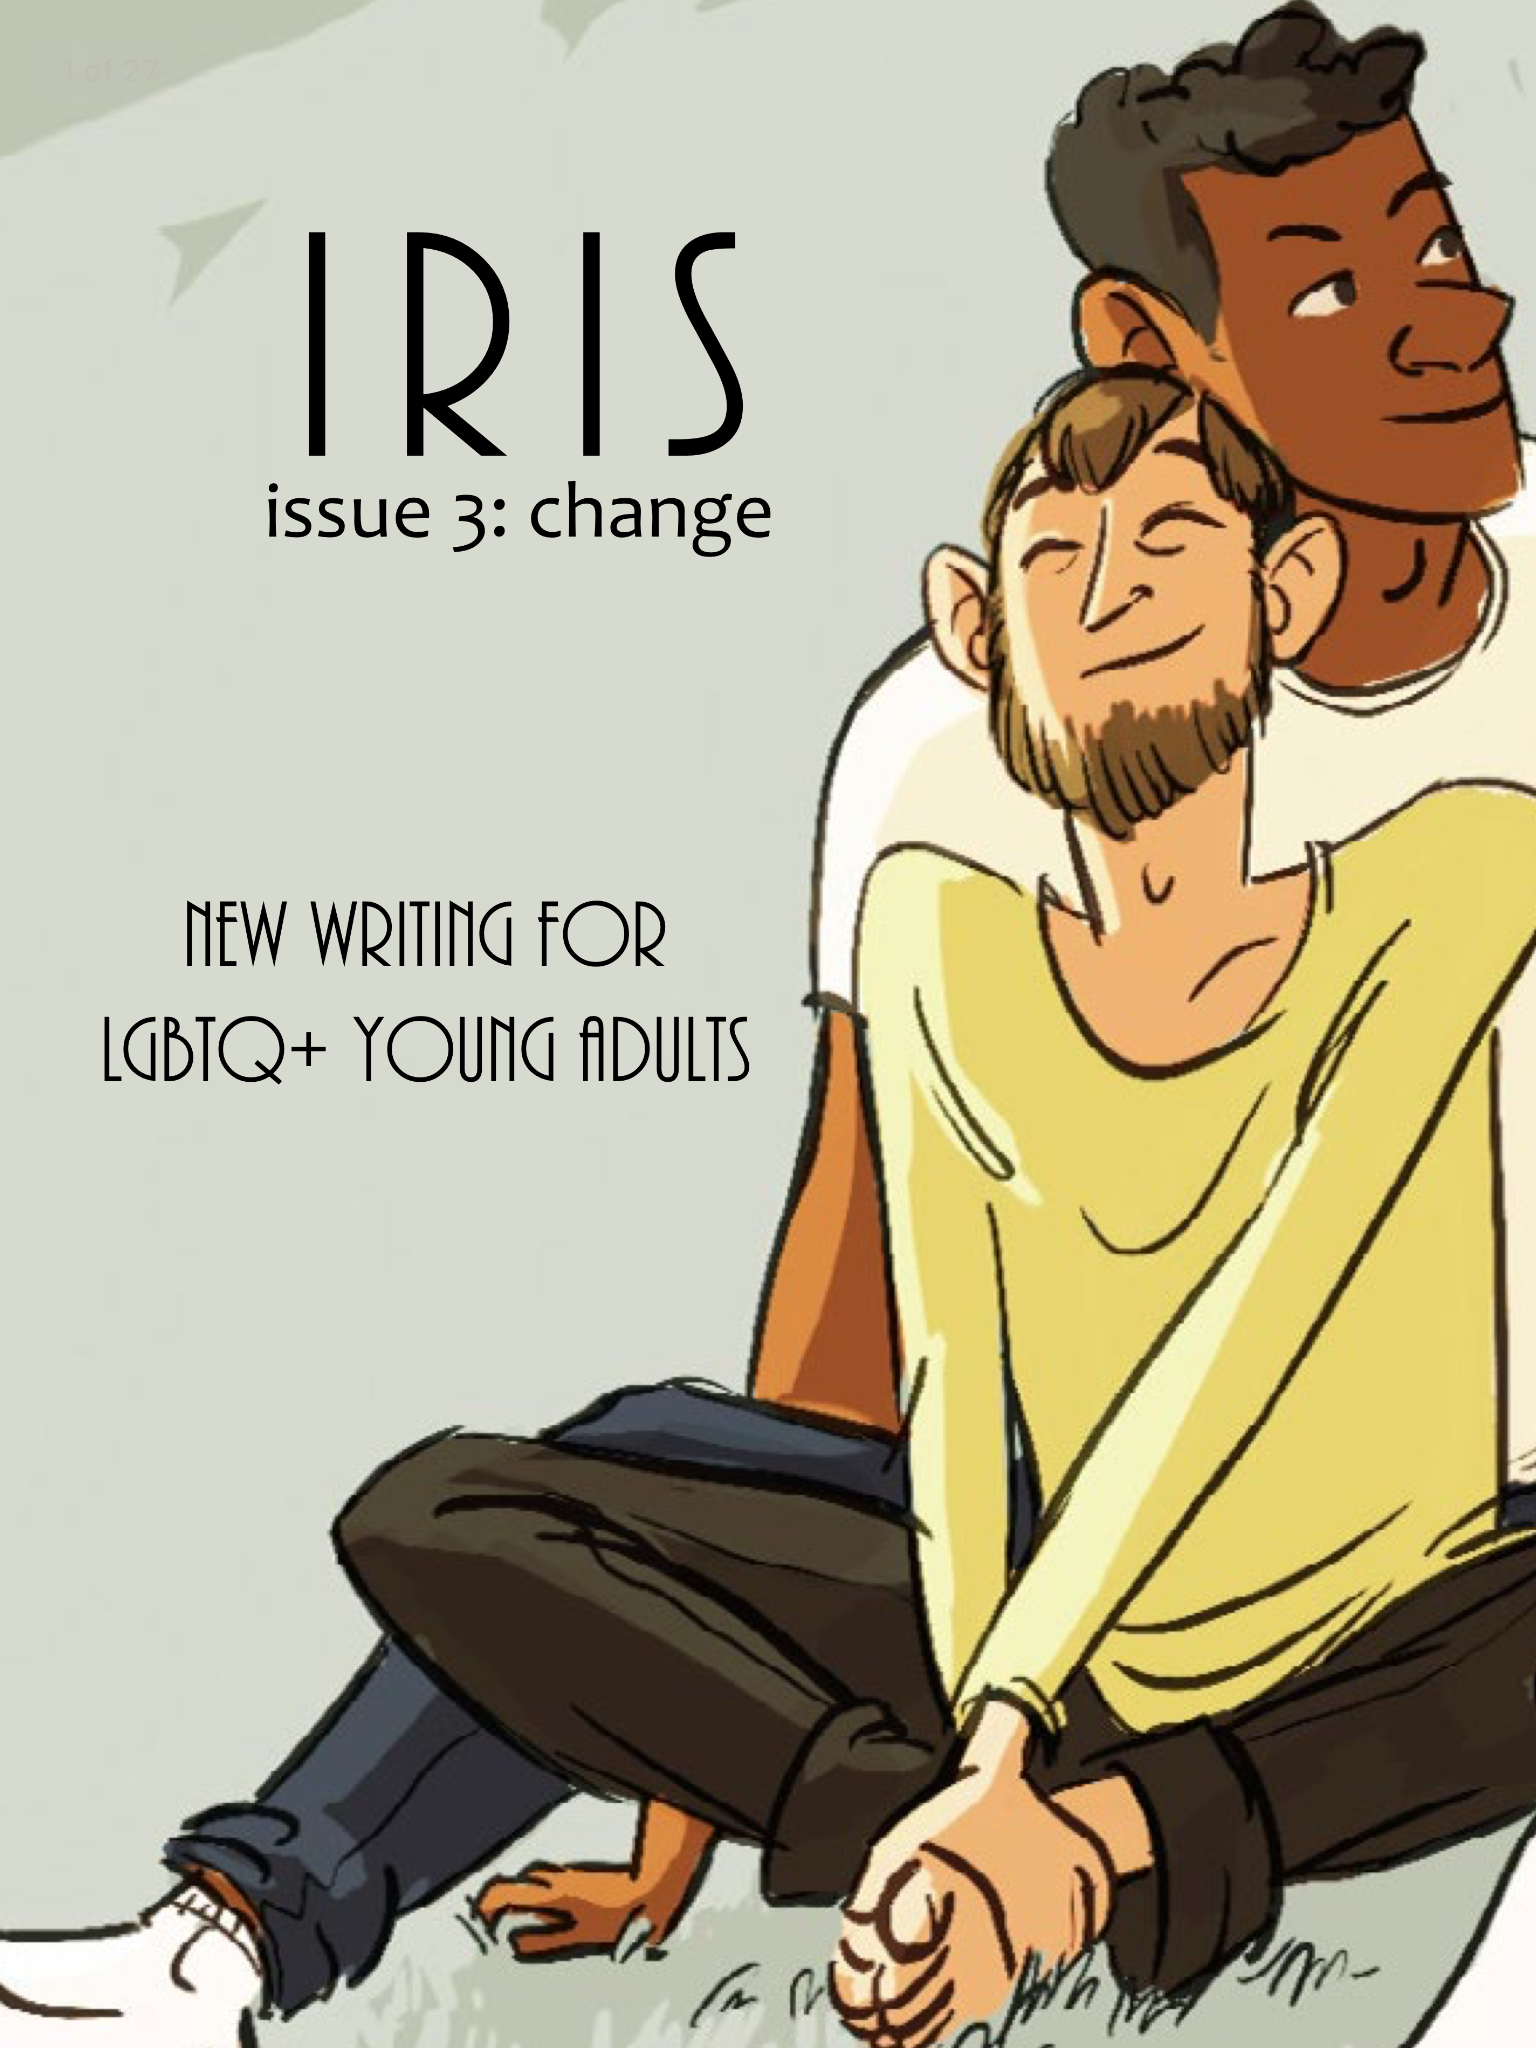 iris3cover.png